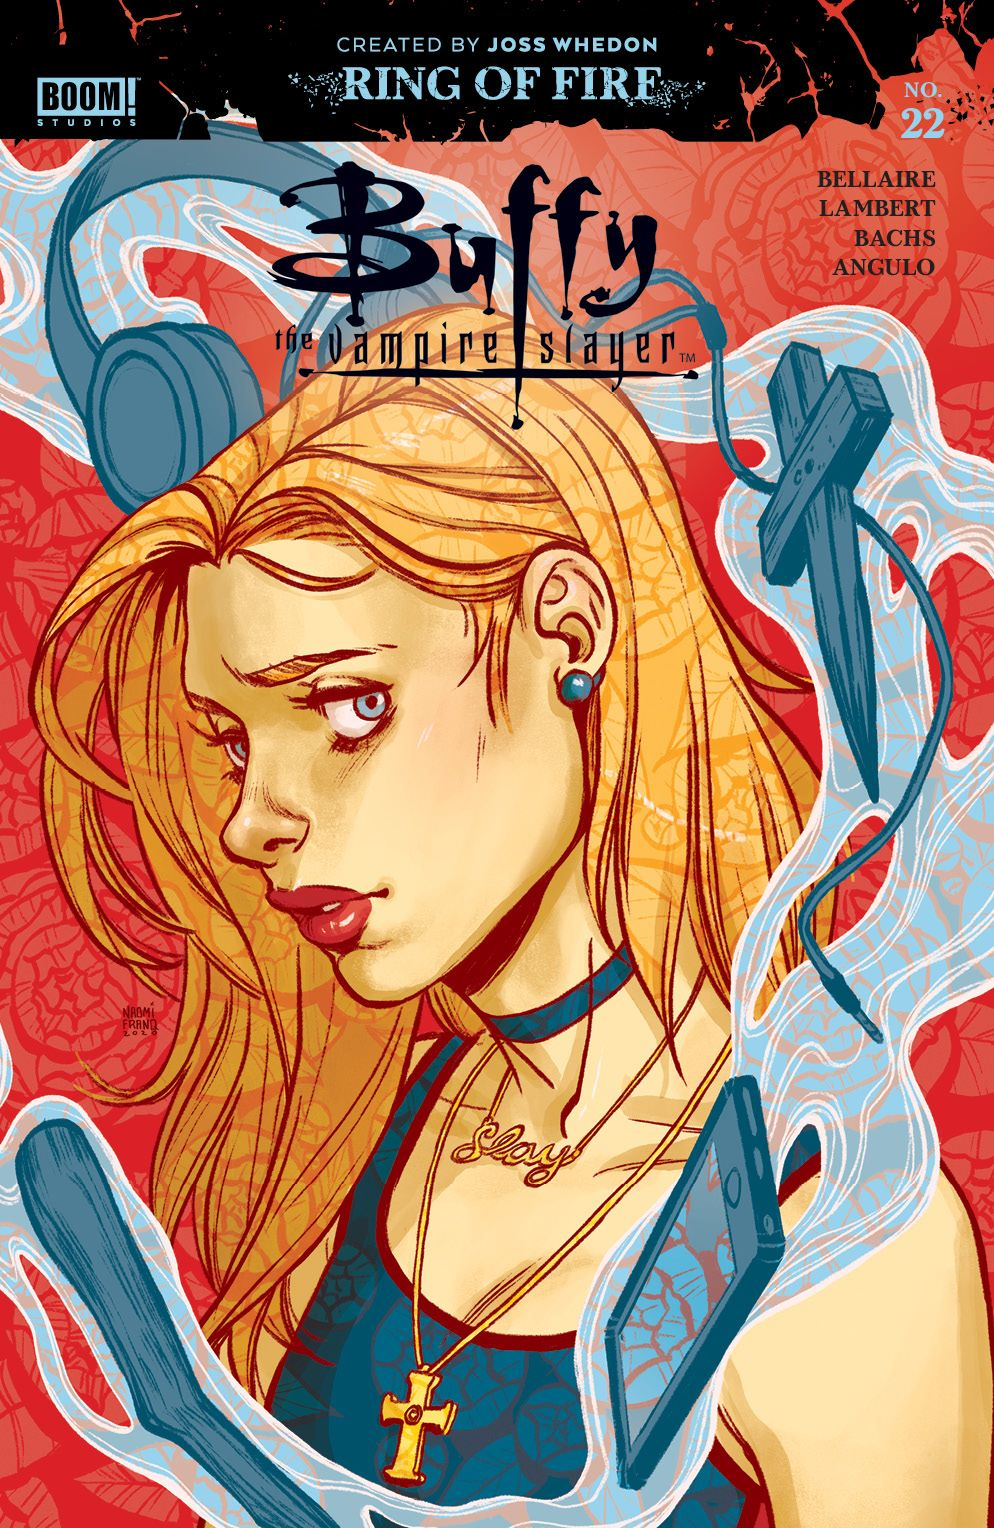 Buffy_022_Cover_B_Multiverse_001 ComicList: BOOM! Studios New Releases for 02/03/2021